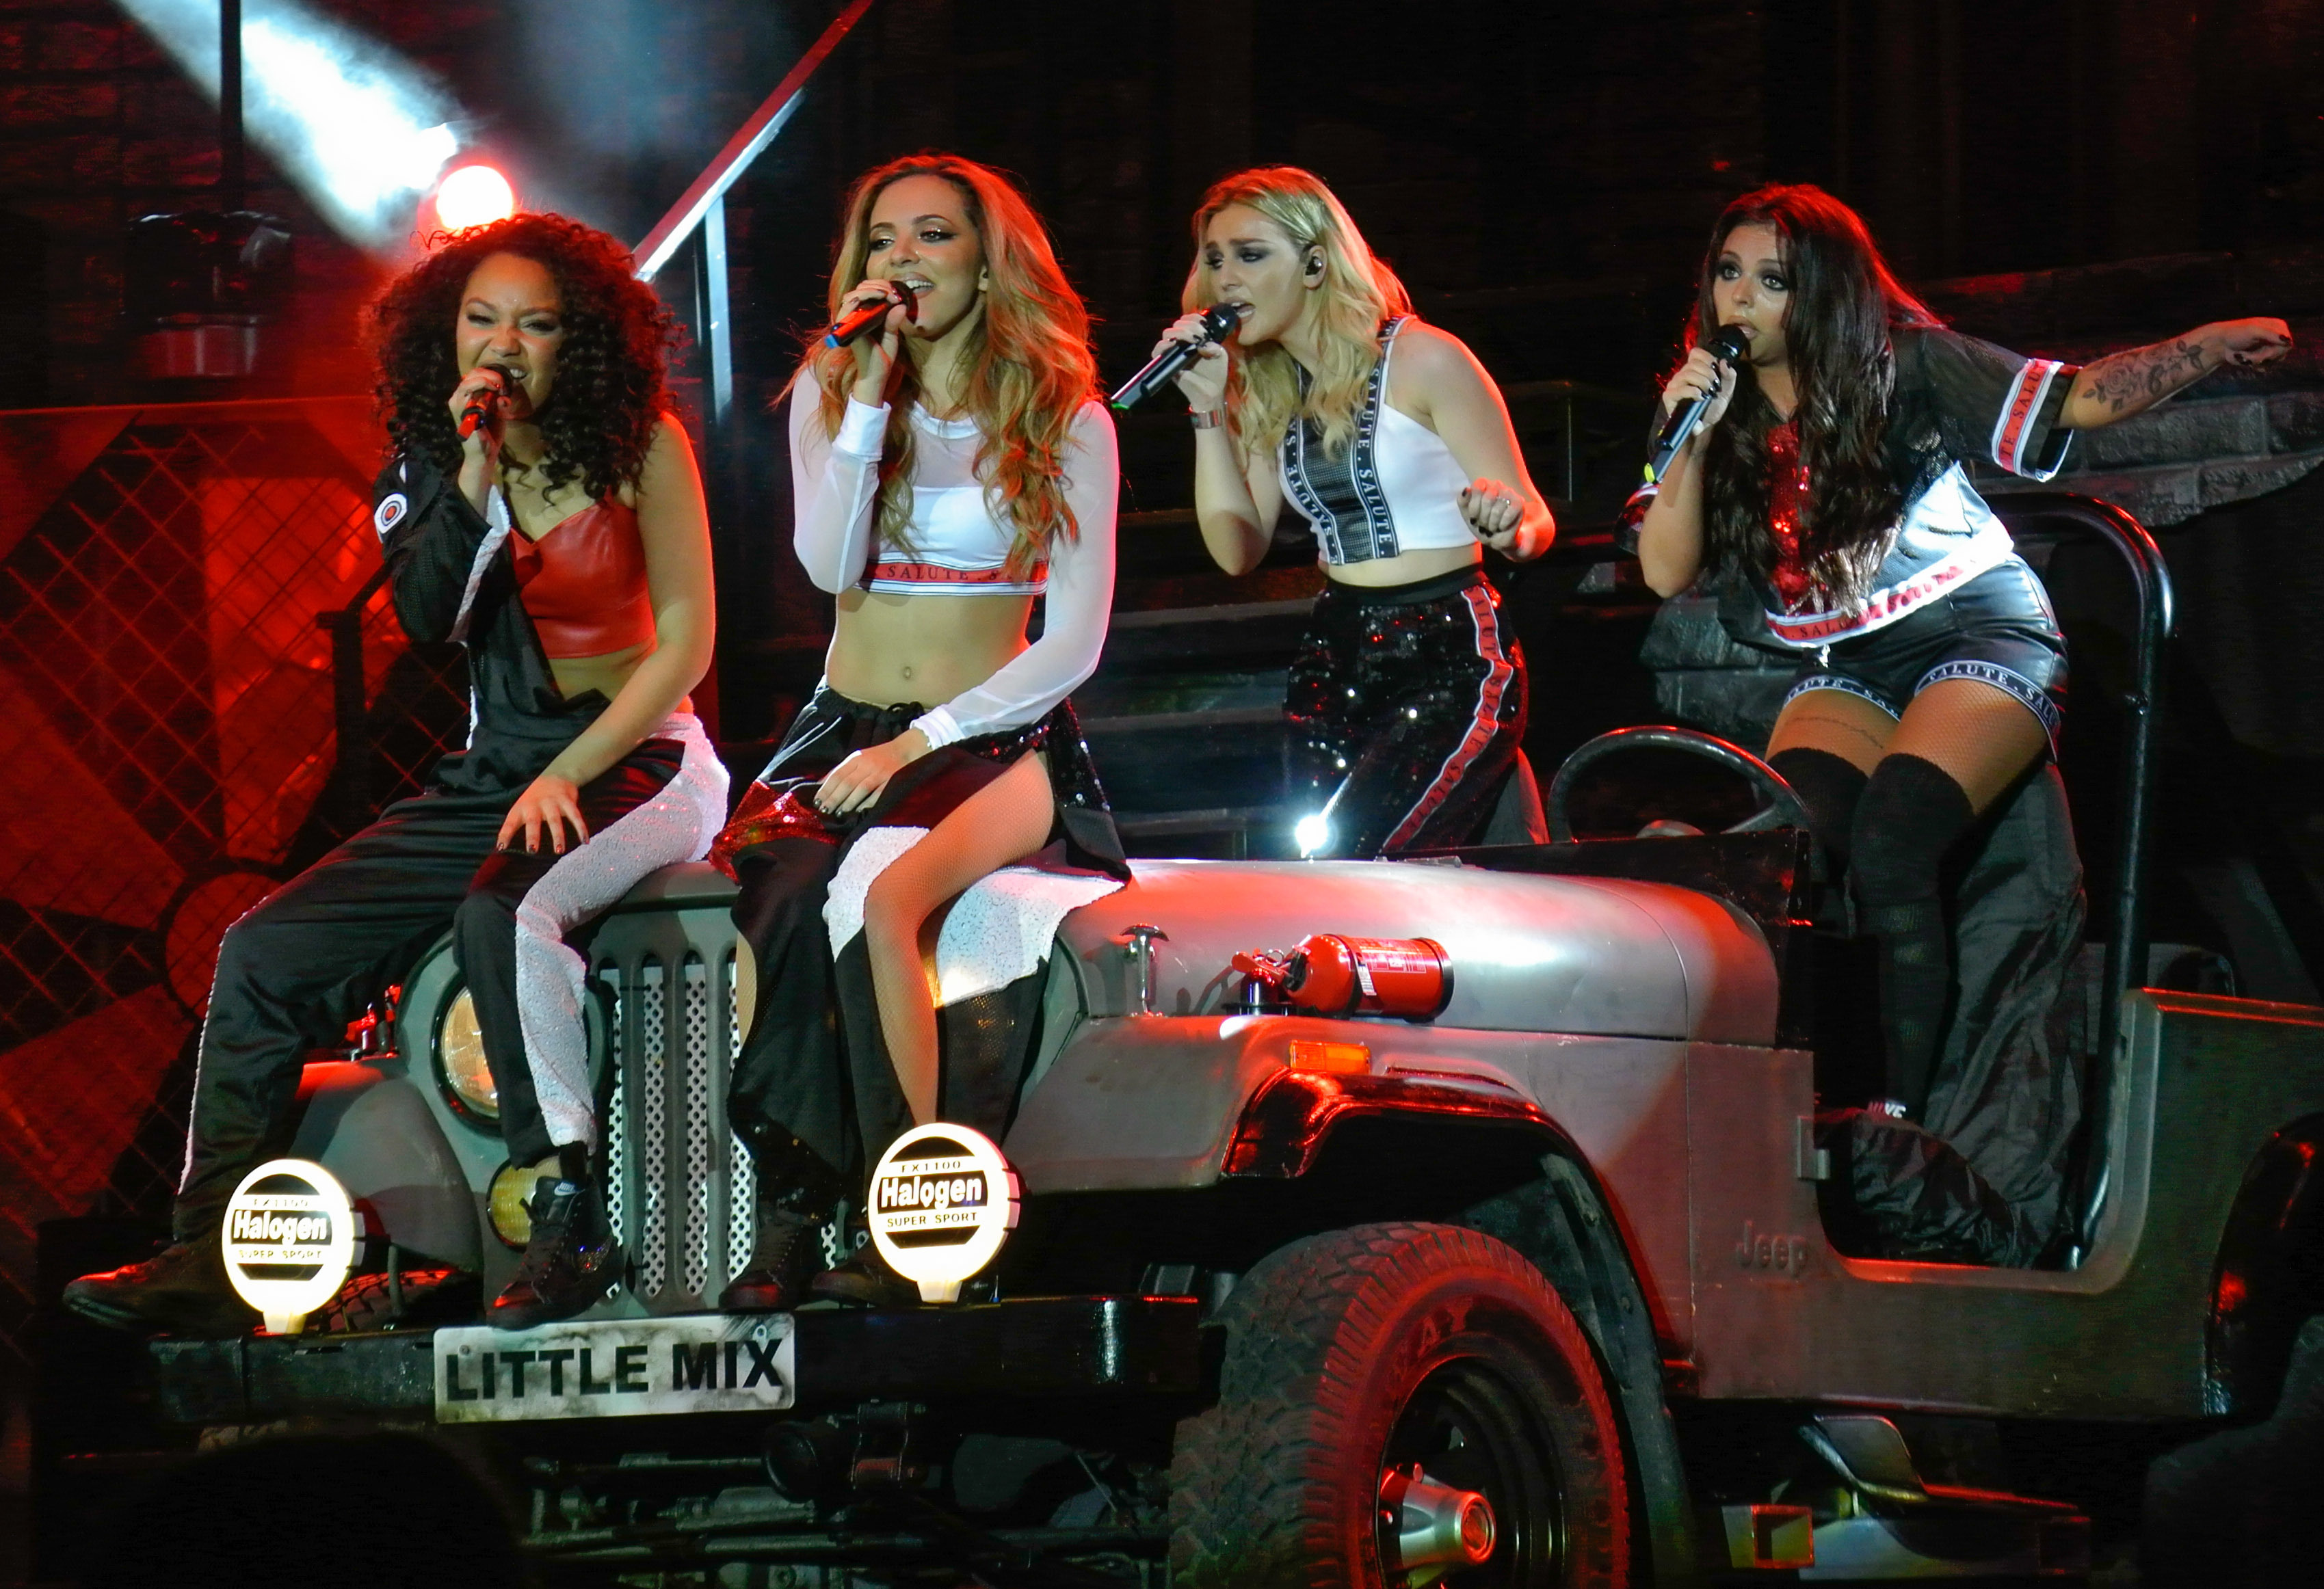 Little Mix 'Salute' Tour 2014